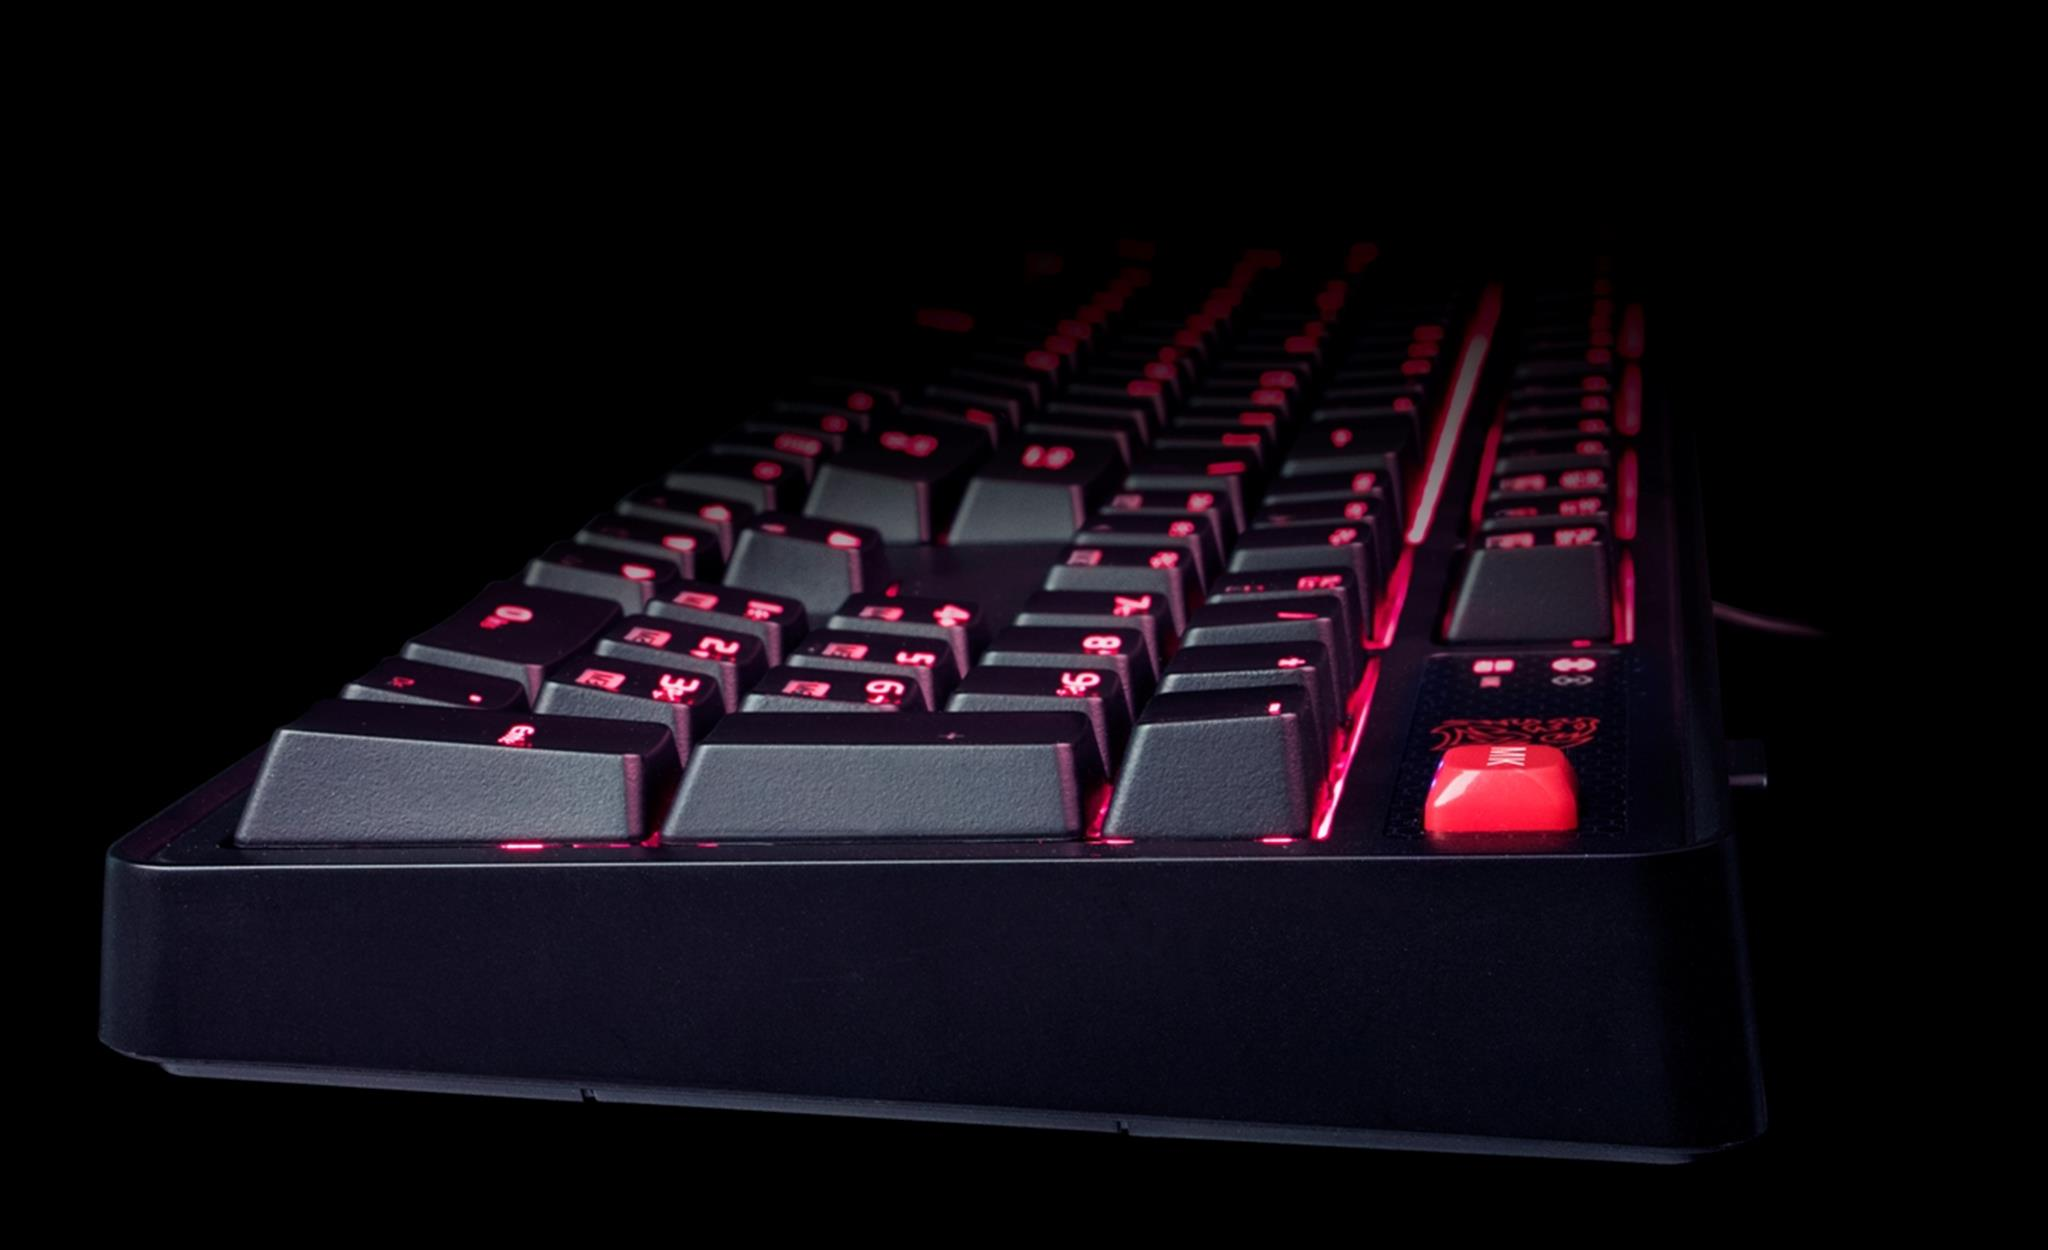 tt-esports-meka-pro-cherry-mx-mechanical-gaming-keyboard-uses-cherry-mx-switches